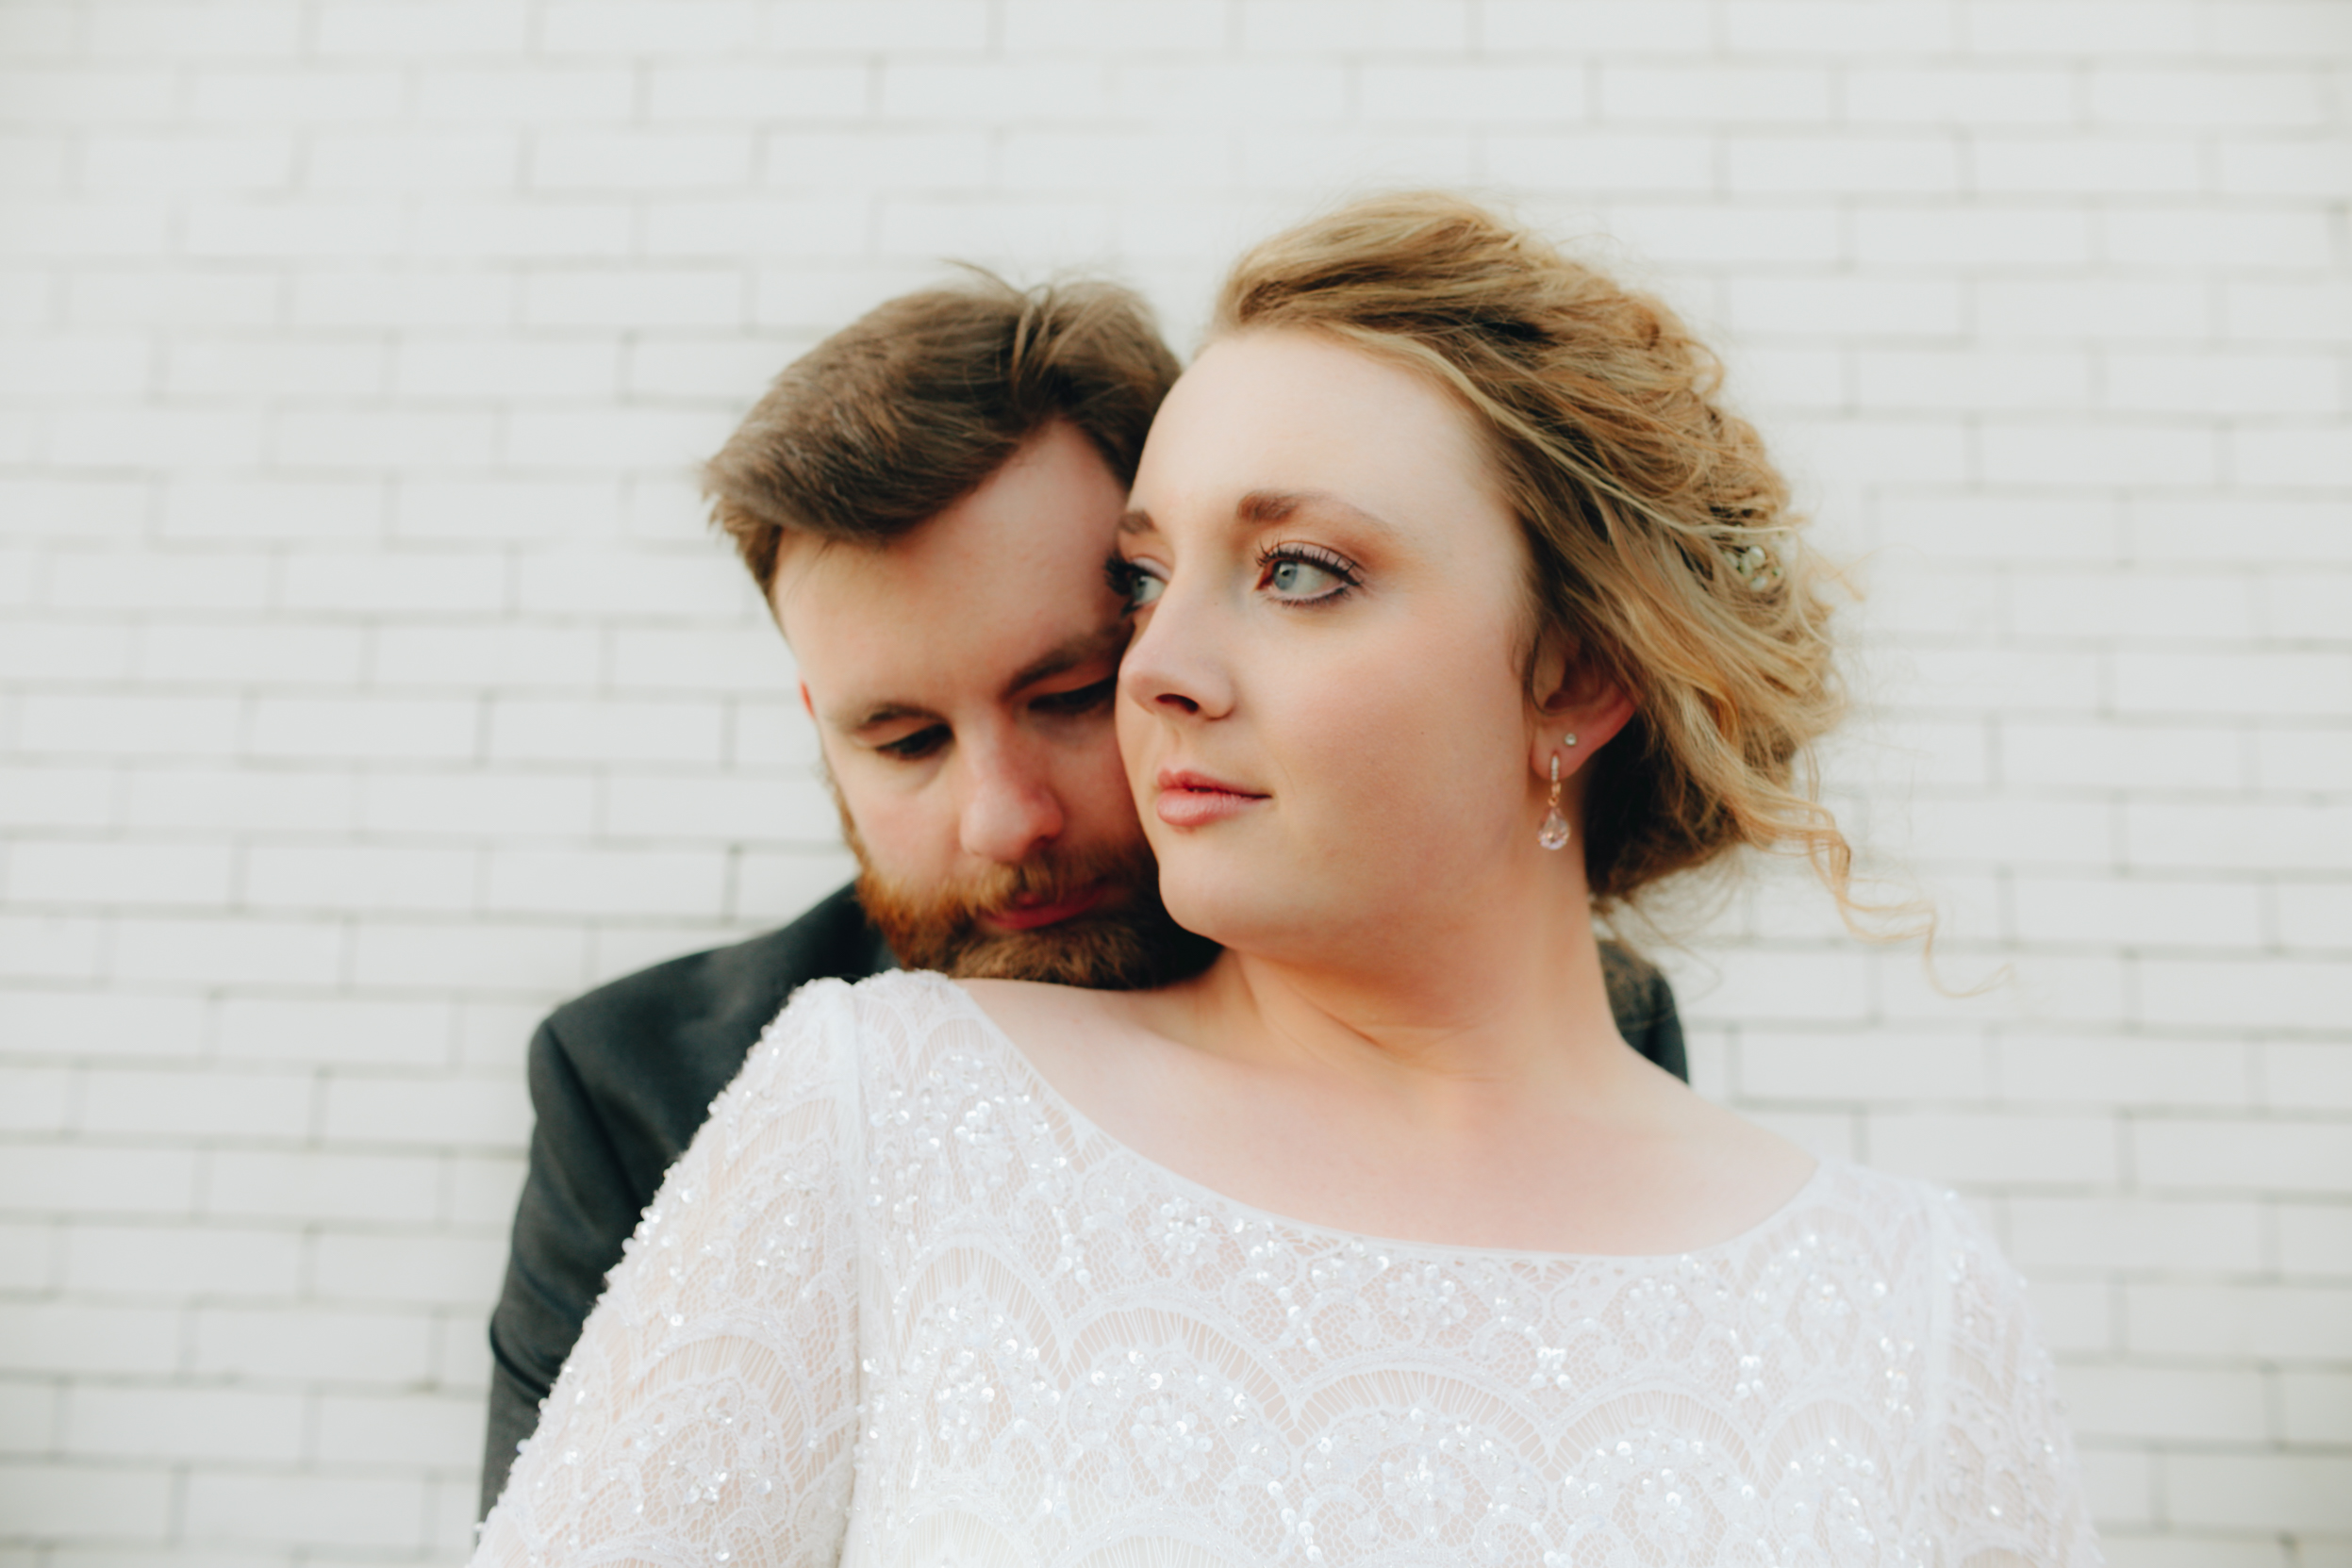 Mr. and Mrs. Anderson get married in Downtown Locust Grove. As Alicia says now and on this particular day, das wassup! We wish you the best guys, and hope to see you you two soon! Shoutout to Morgan Holley on some very particular shots!